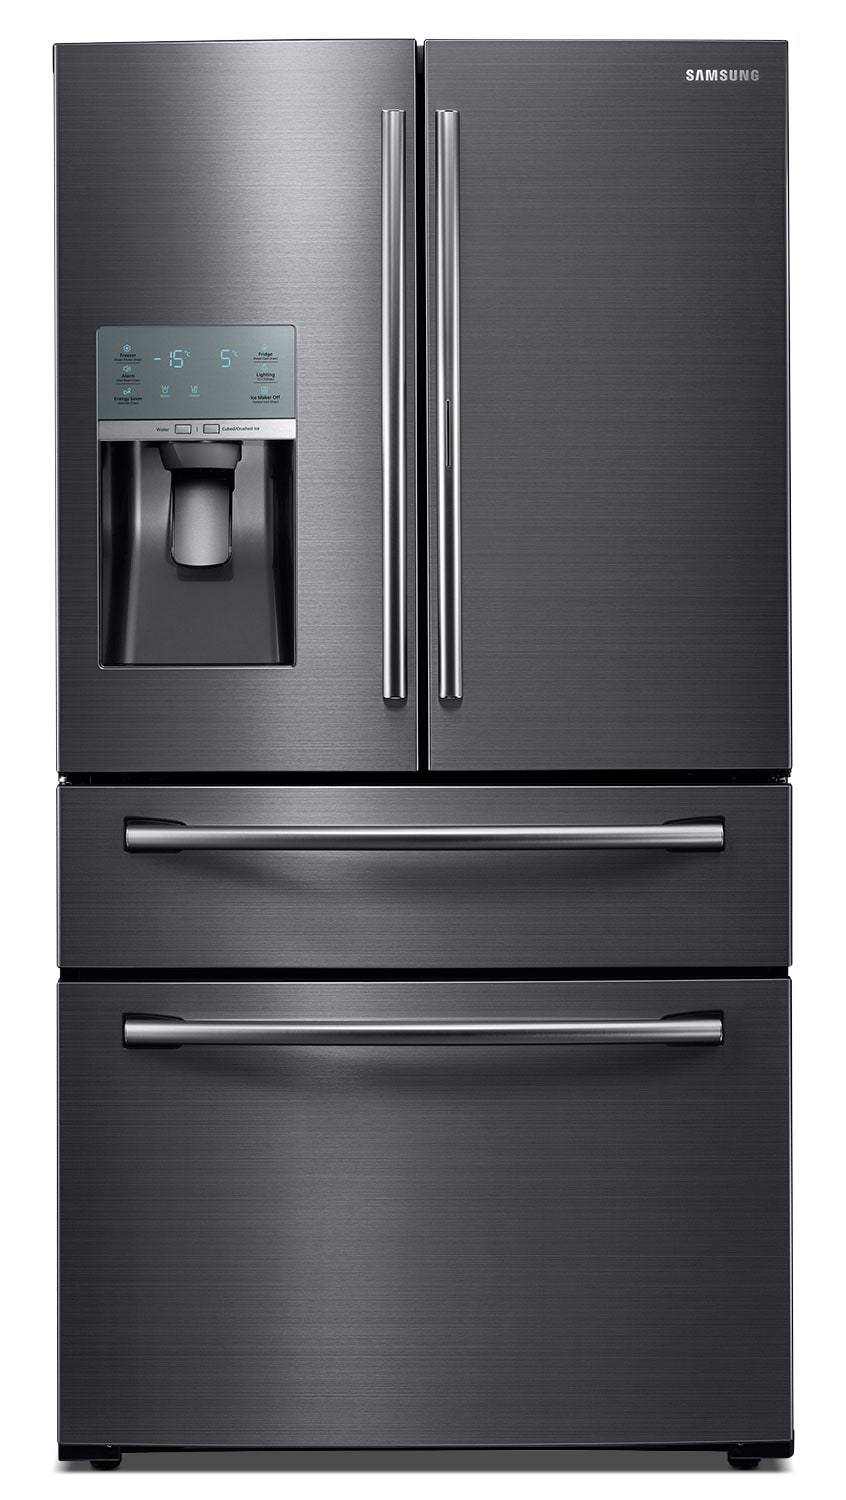 Samsung Black Stainless Steel French-Door Refrigerator (28 Cu. Ft.) - RF28JBEDBSG/AA